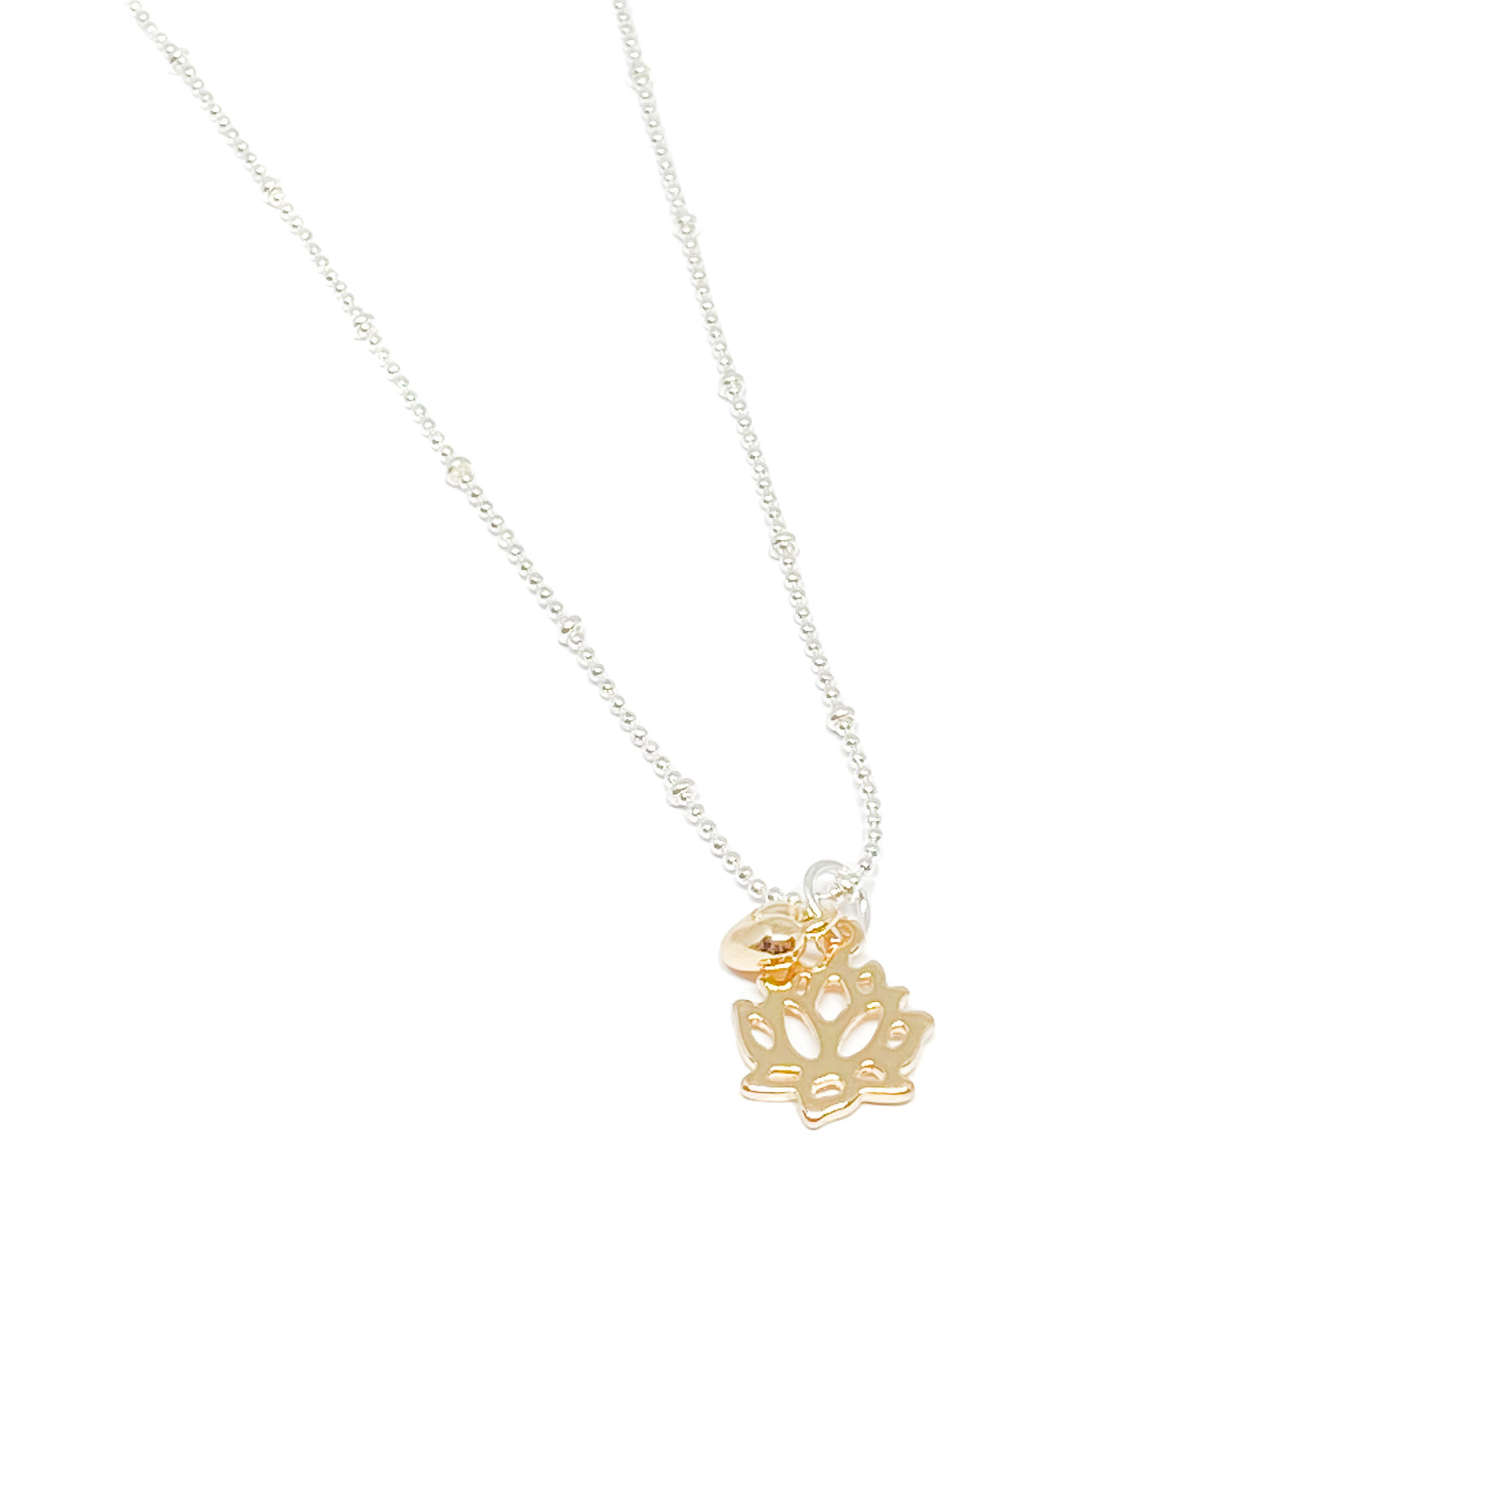 India Lotus Flower Necklace - Gold